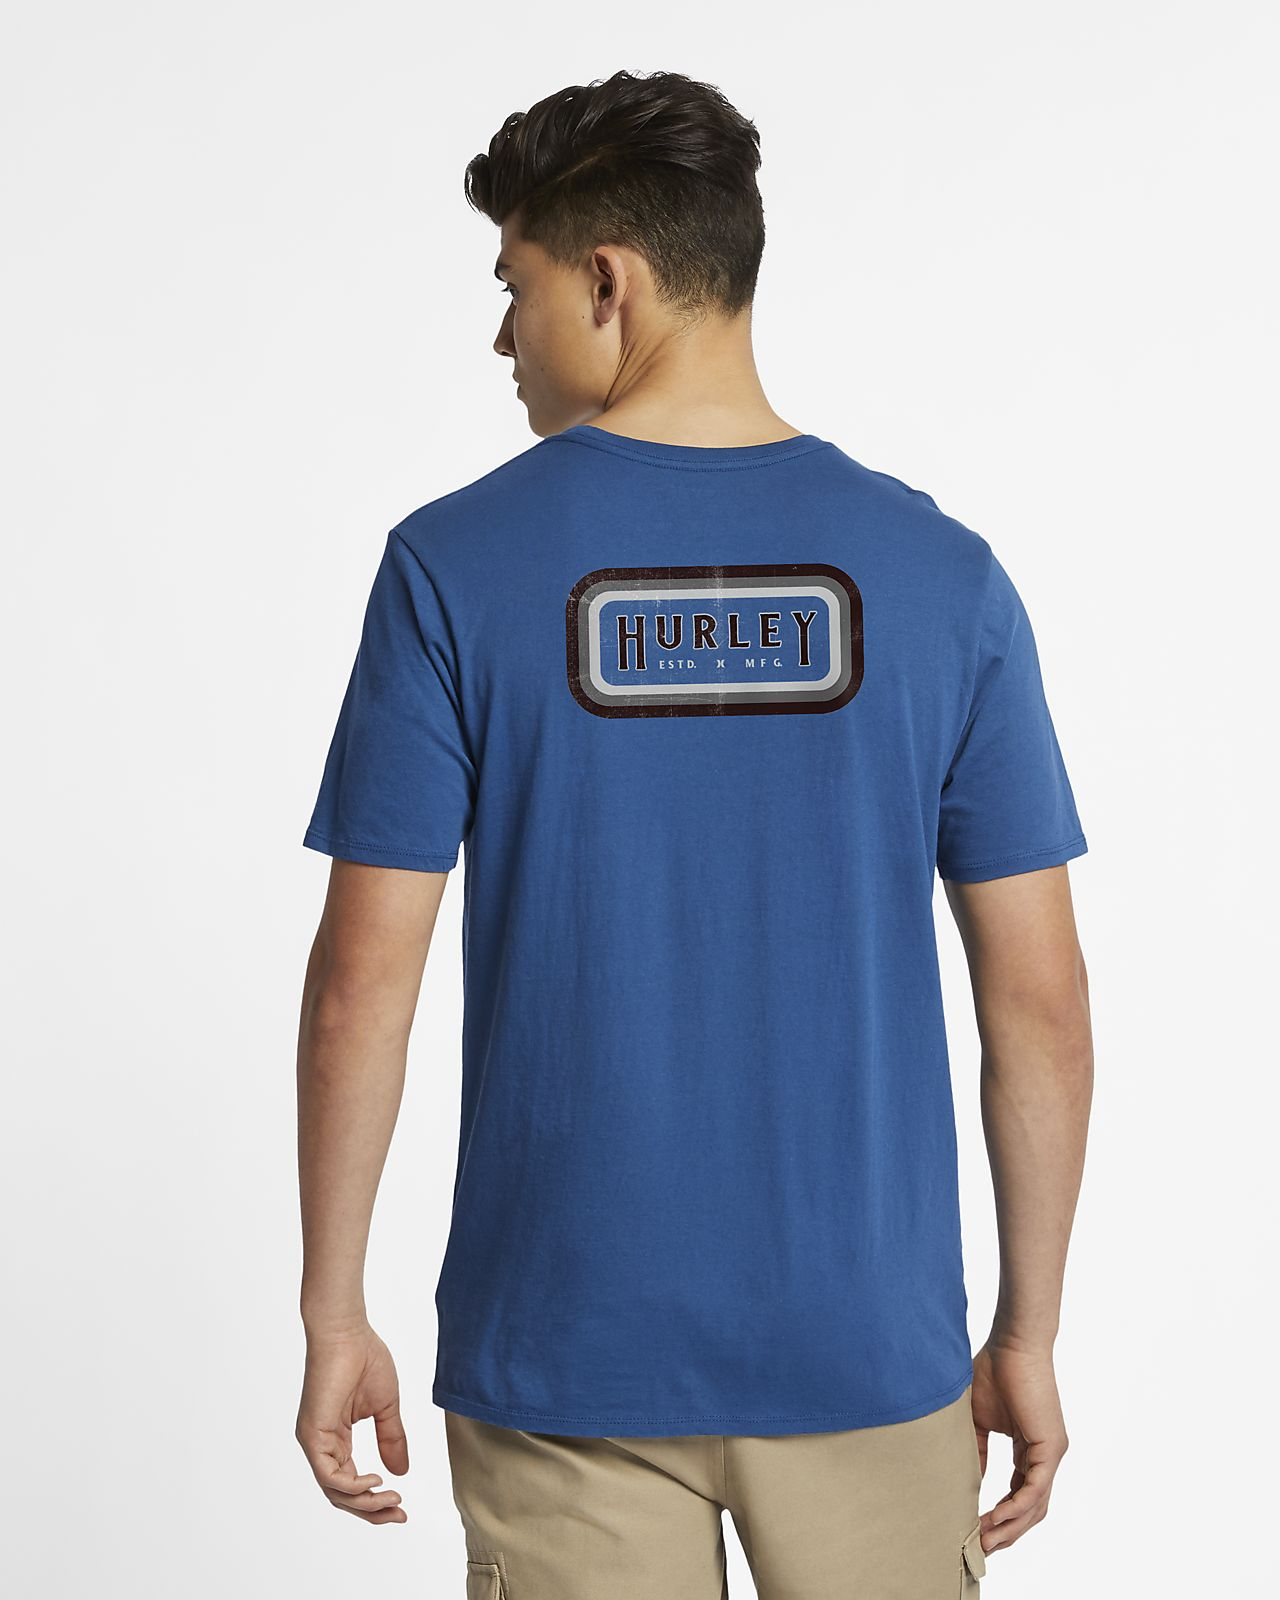 Hurley Breaker Men's T-Shirt